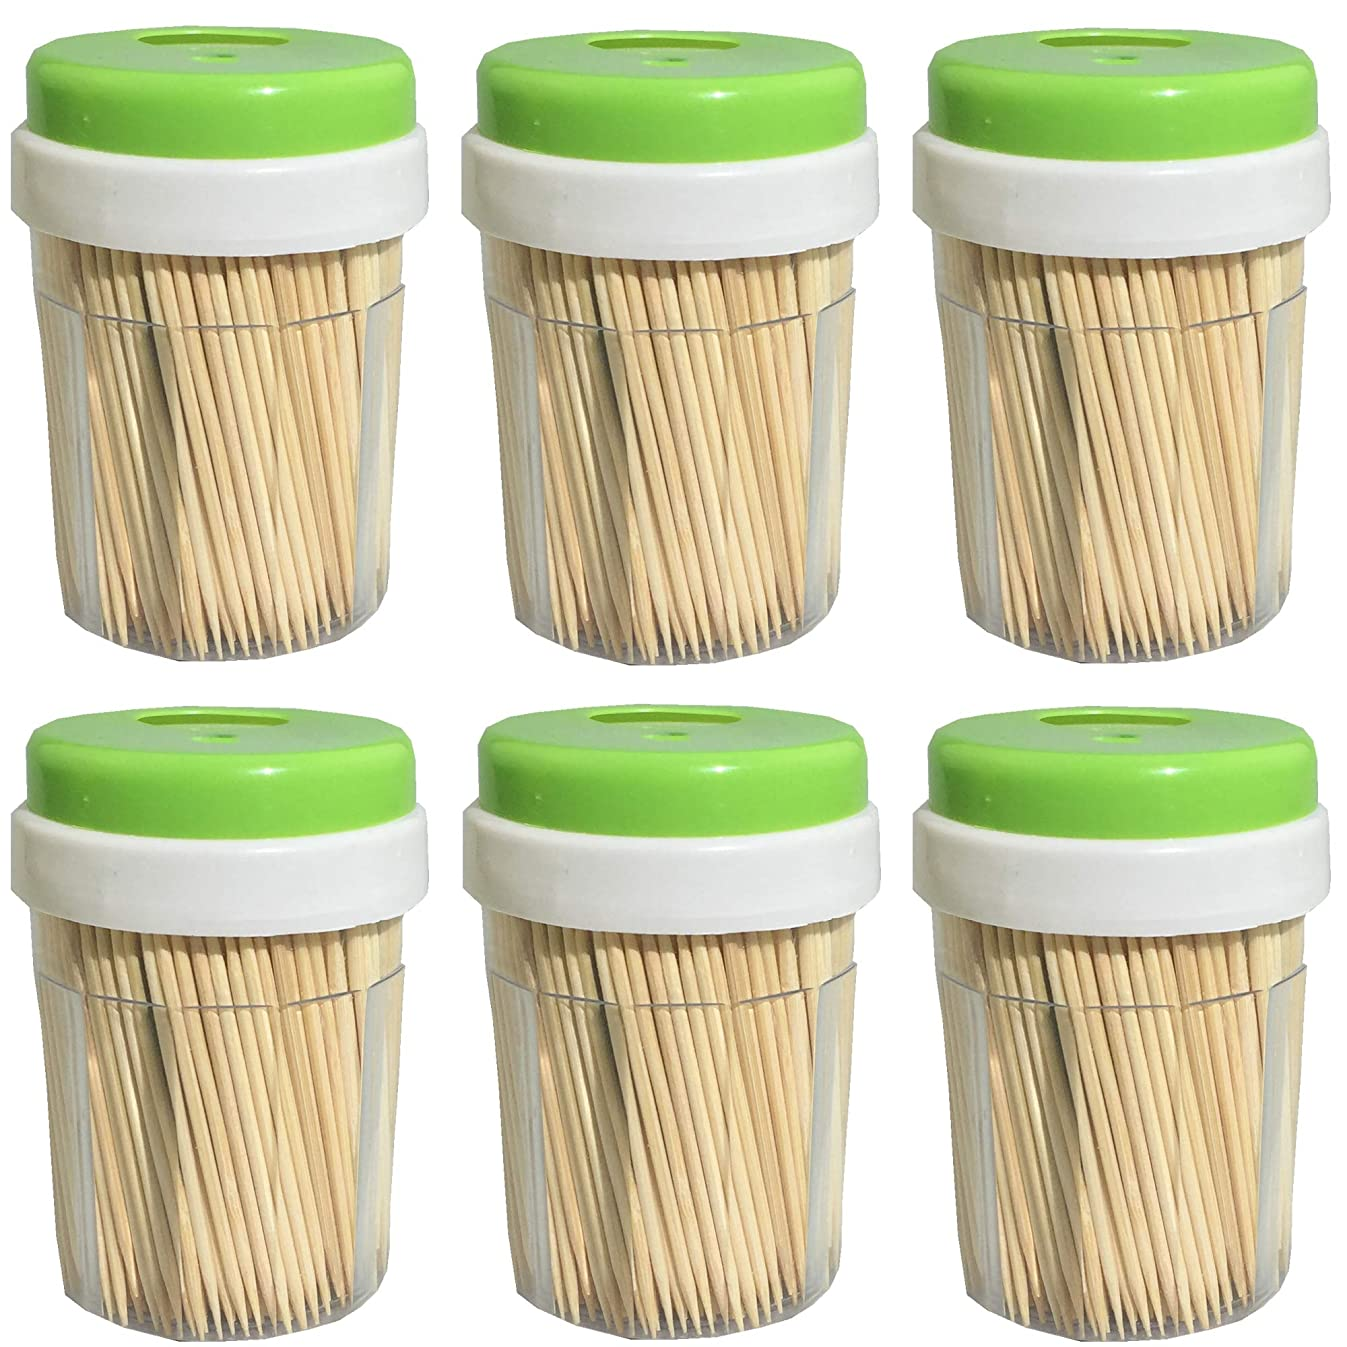 Round Bamboo Wood Toothpicks 3000 Pieces - Splinter-Free Wooden Toothpicks for Teeth with Dispenser